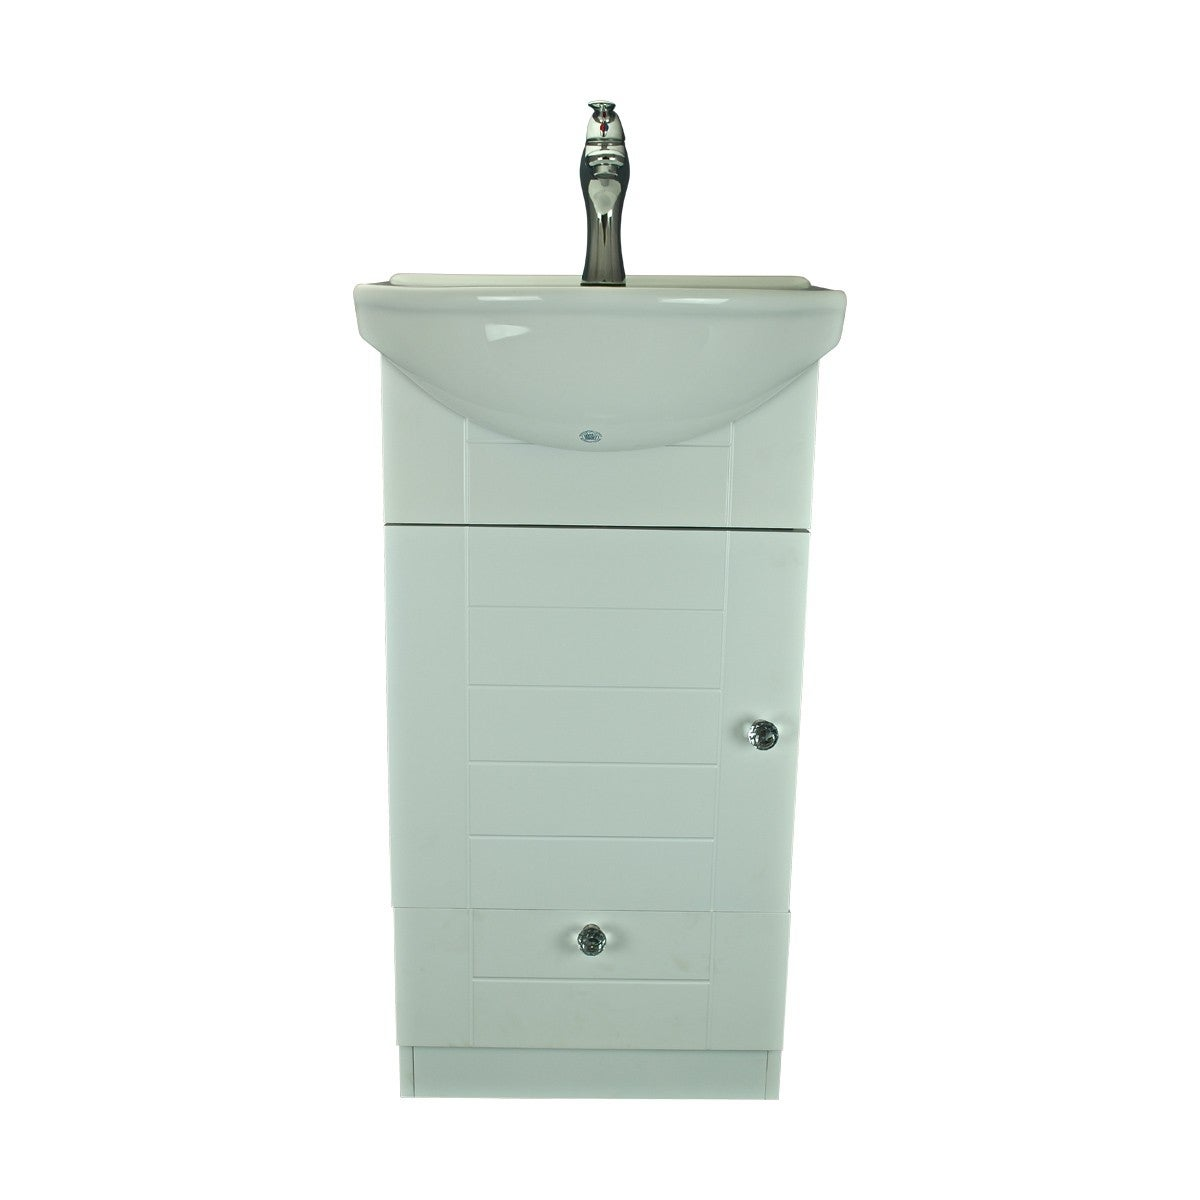 Small Wall Mounted Cabinet Vanity Bathroom Sink With Faucet Easy Emble Free Shipping Today 14041776